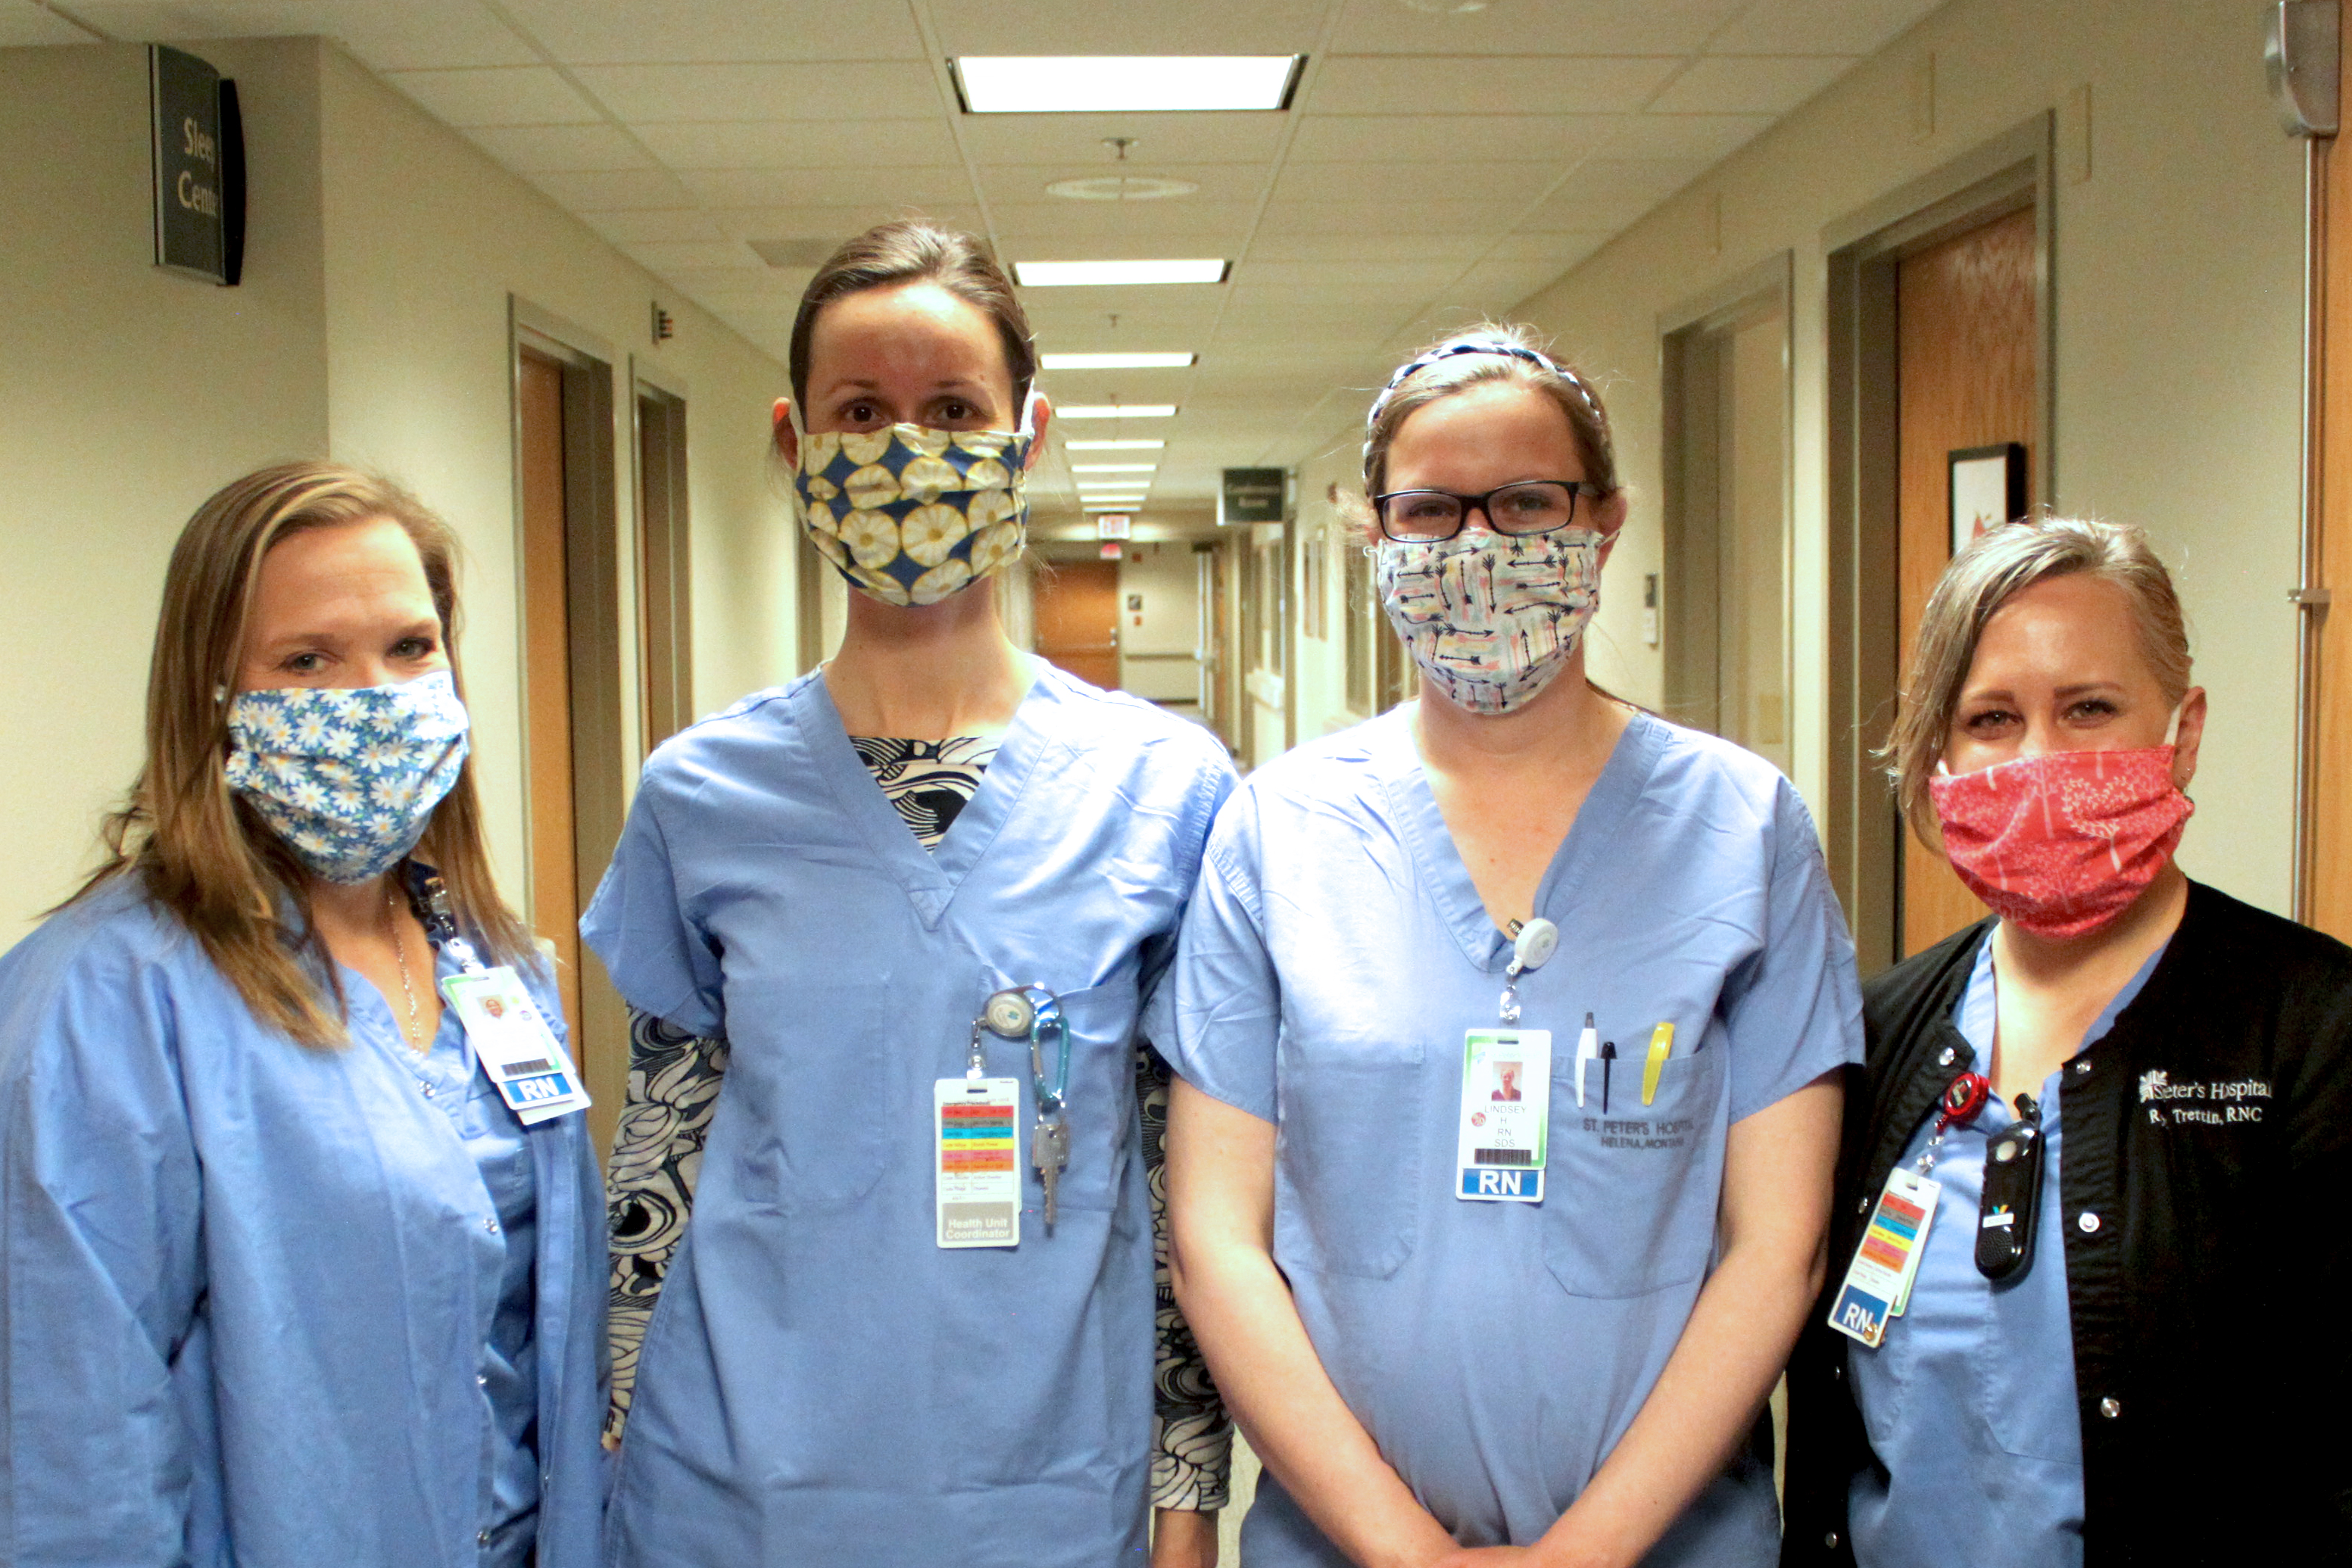 Caregivers pose wearing cloth masks donated by community members